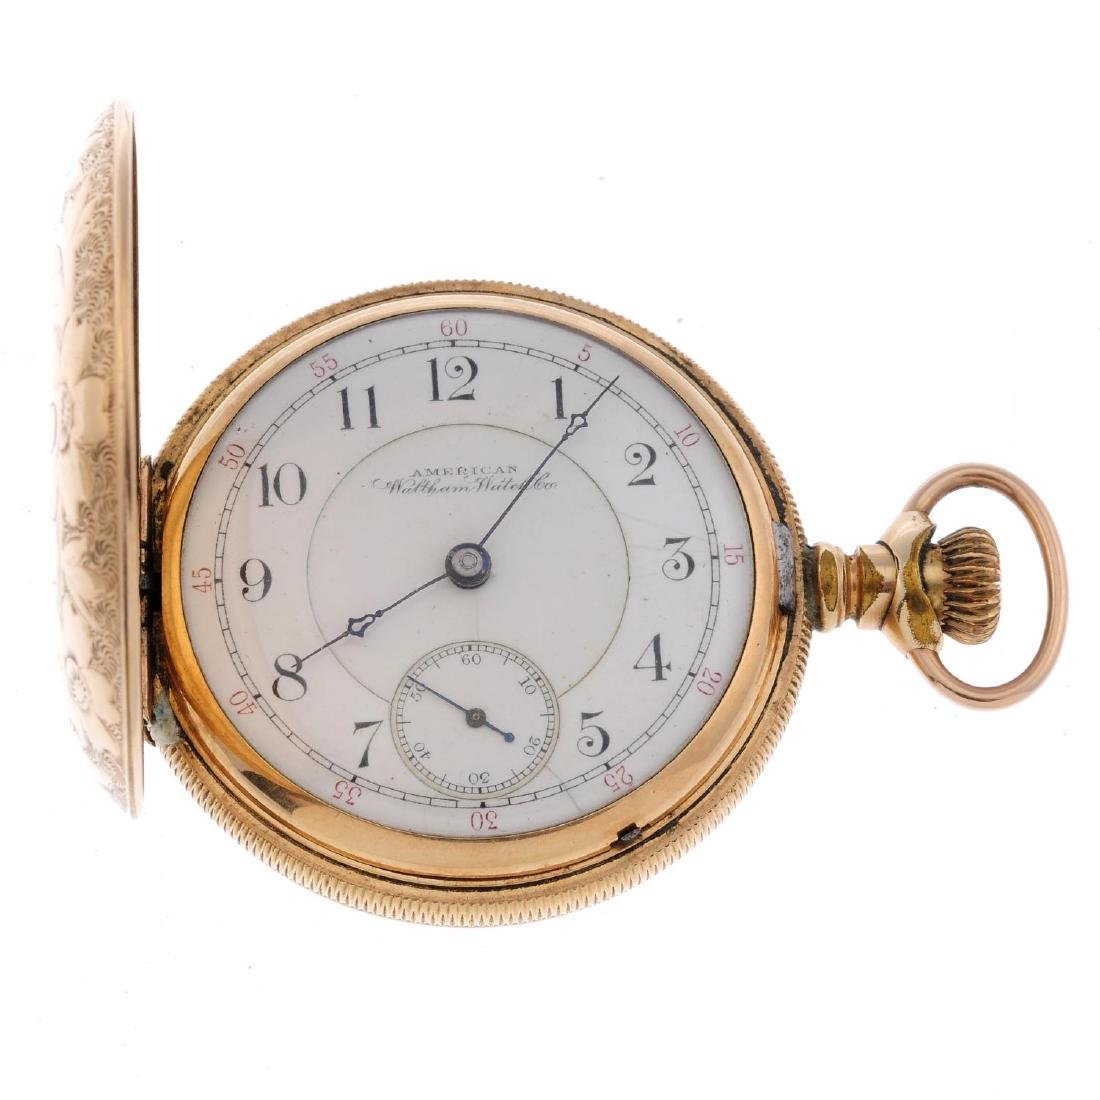 A full hunter pocket watch by Waltham. Gold plated